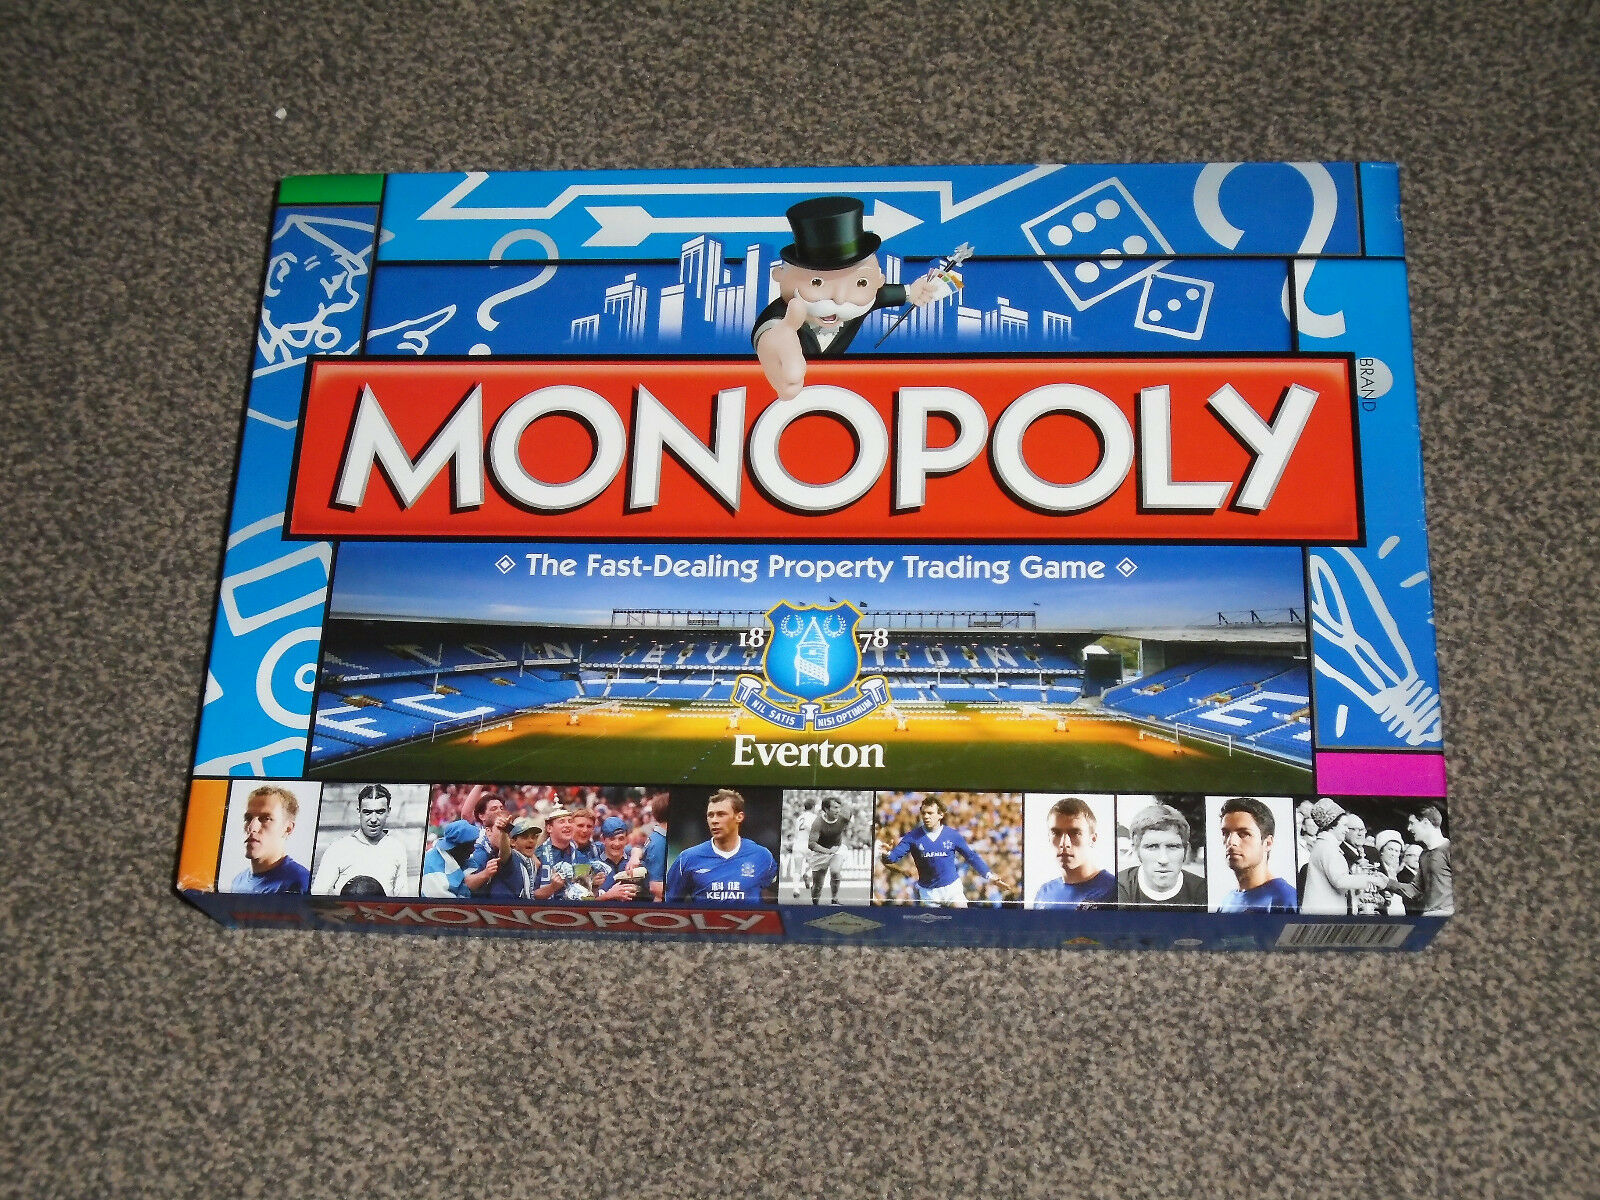 Monopoly  about football club 2011 seltene ausgabe - in vgc (ohne uk p & p)